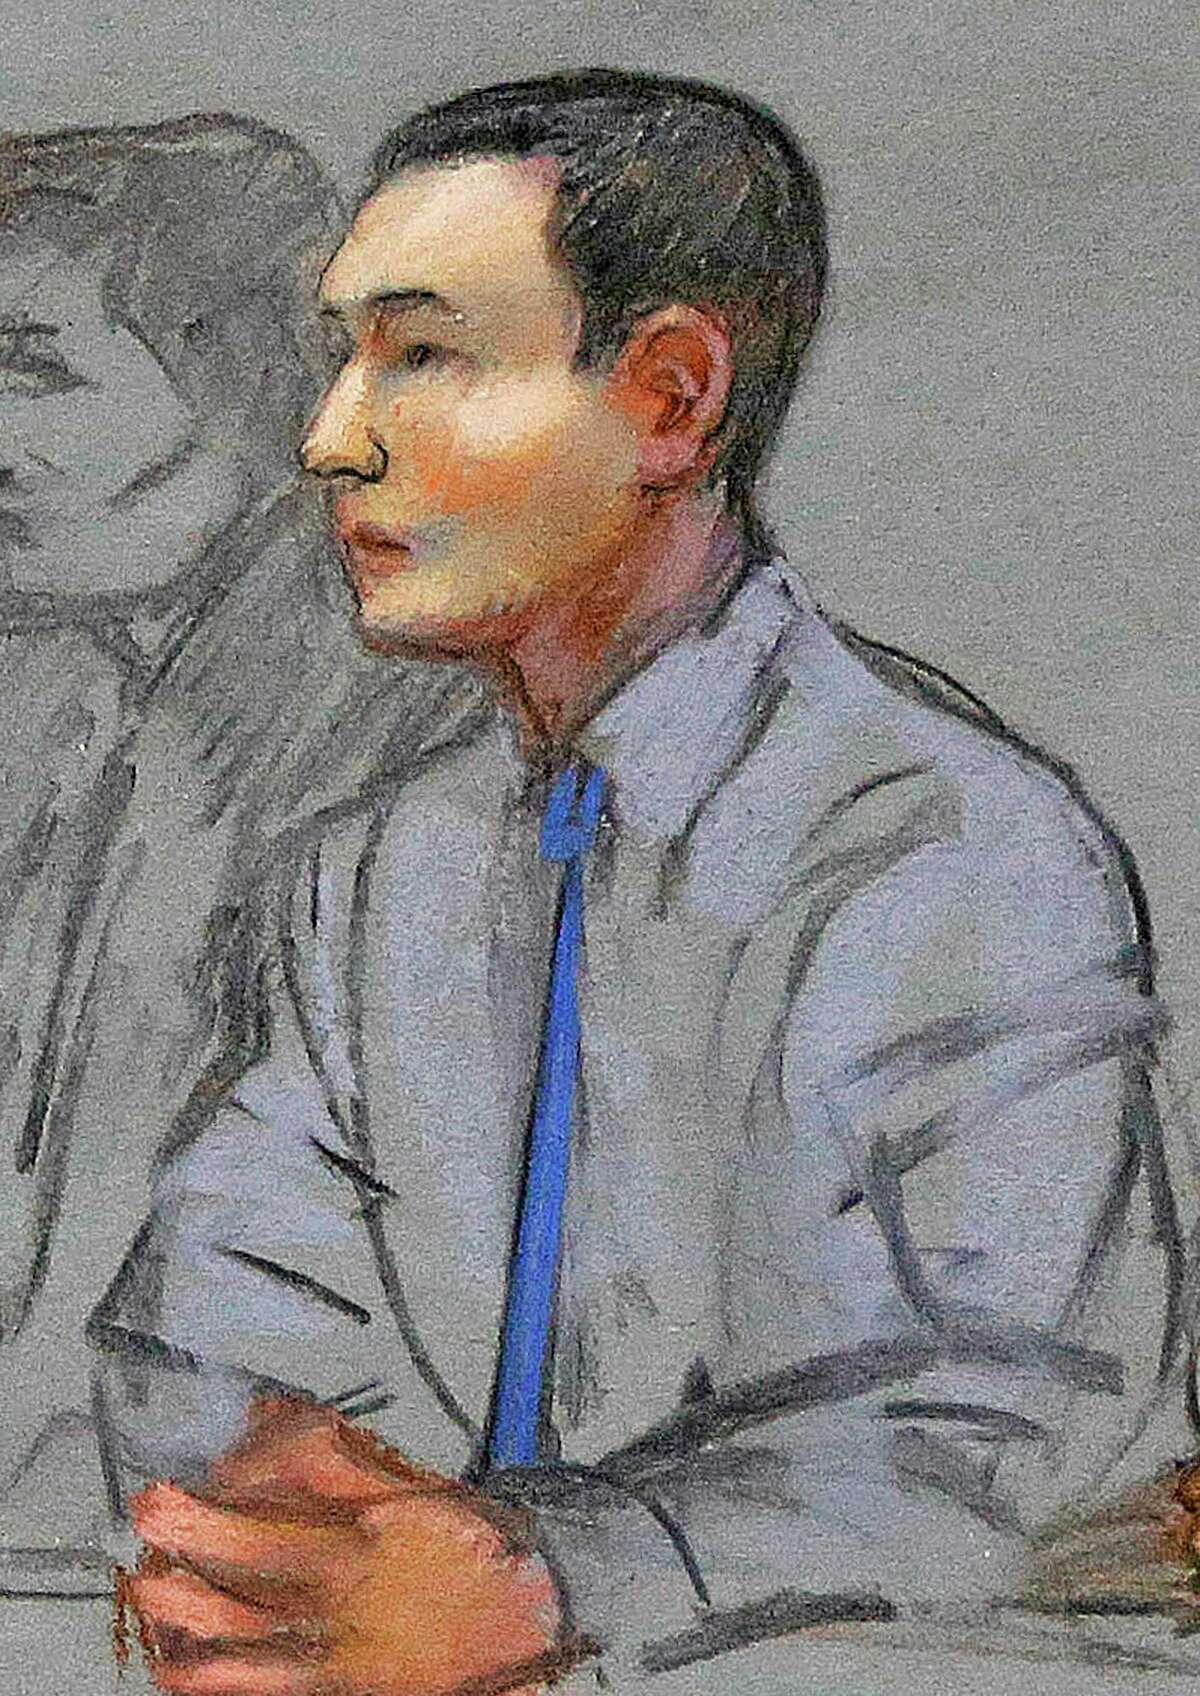 FILE - In this May 13, 2014 file courtroom sketch, defendant Azamat Tazhayakov, a college friend of Boston Marathon bombing suspect Dzhokhar Tsarnaev, sits during a hearing in federal court in Boston. (AP Photo/Jane Flavell Collins, File)